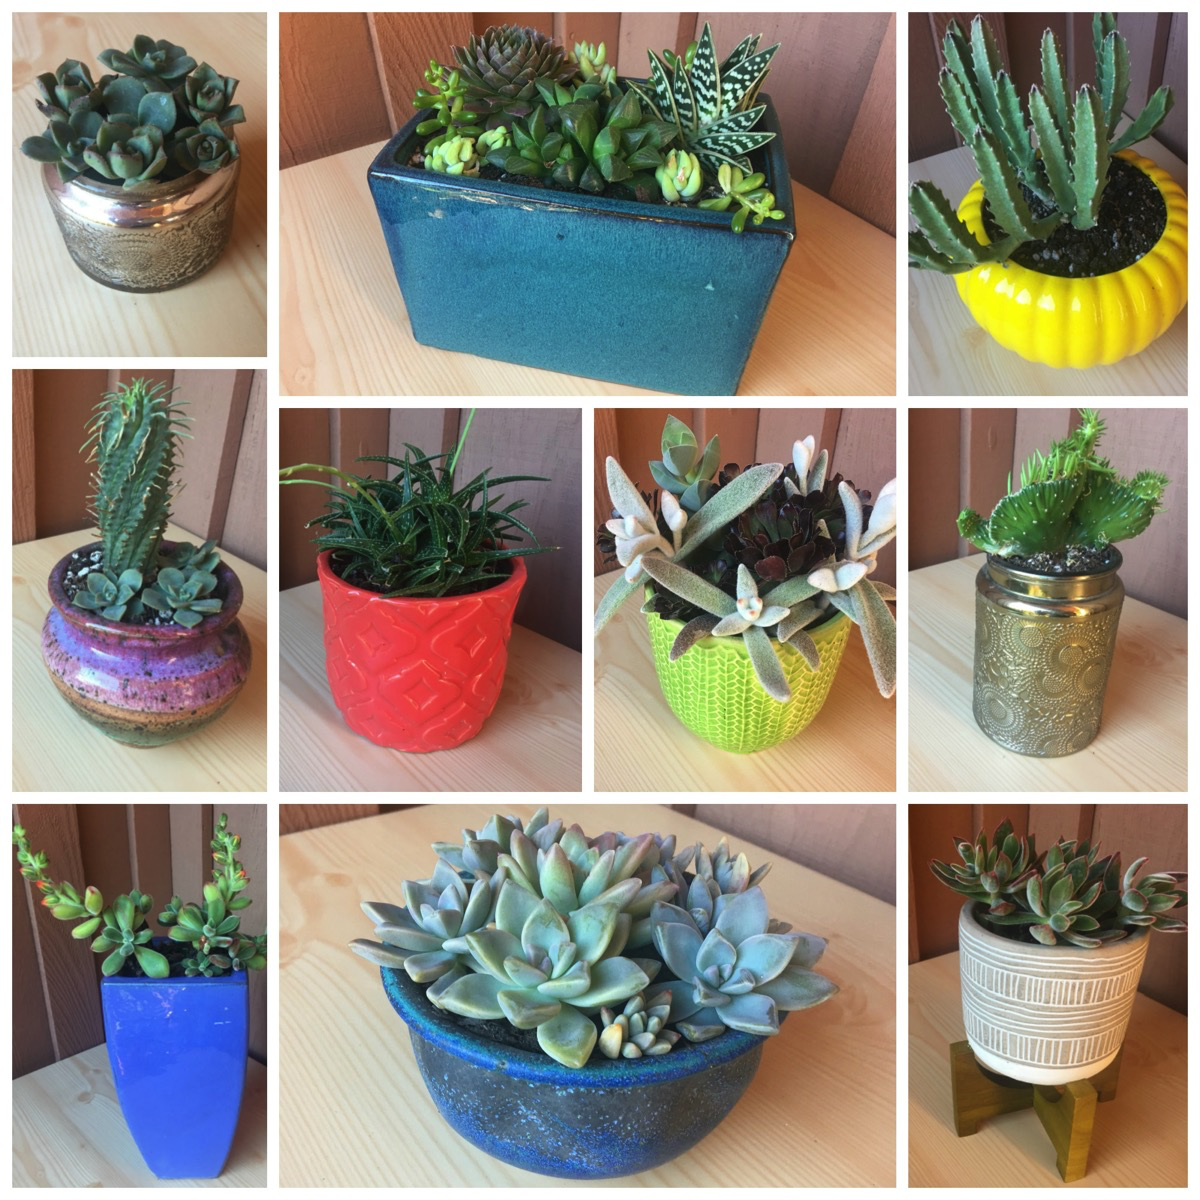 Garden Tips Succulent And Cactus Pot Planting Ideas For Your Home